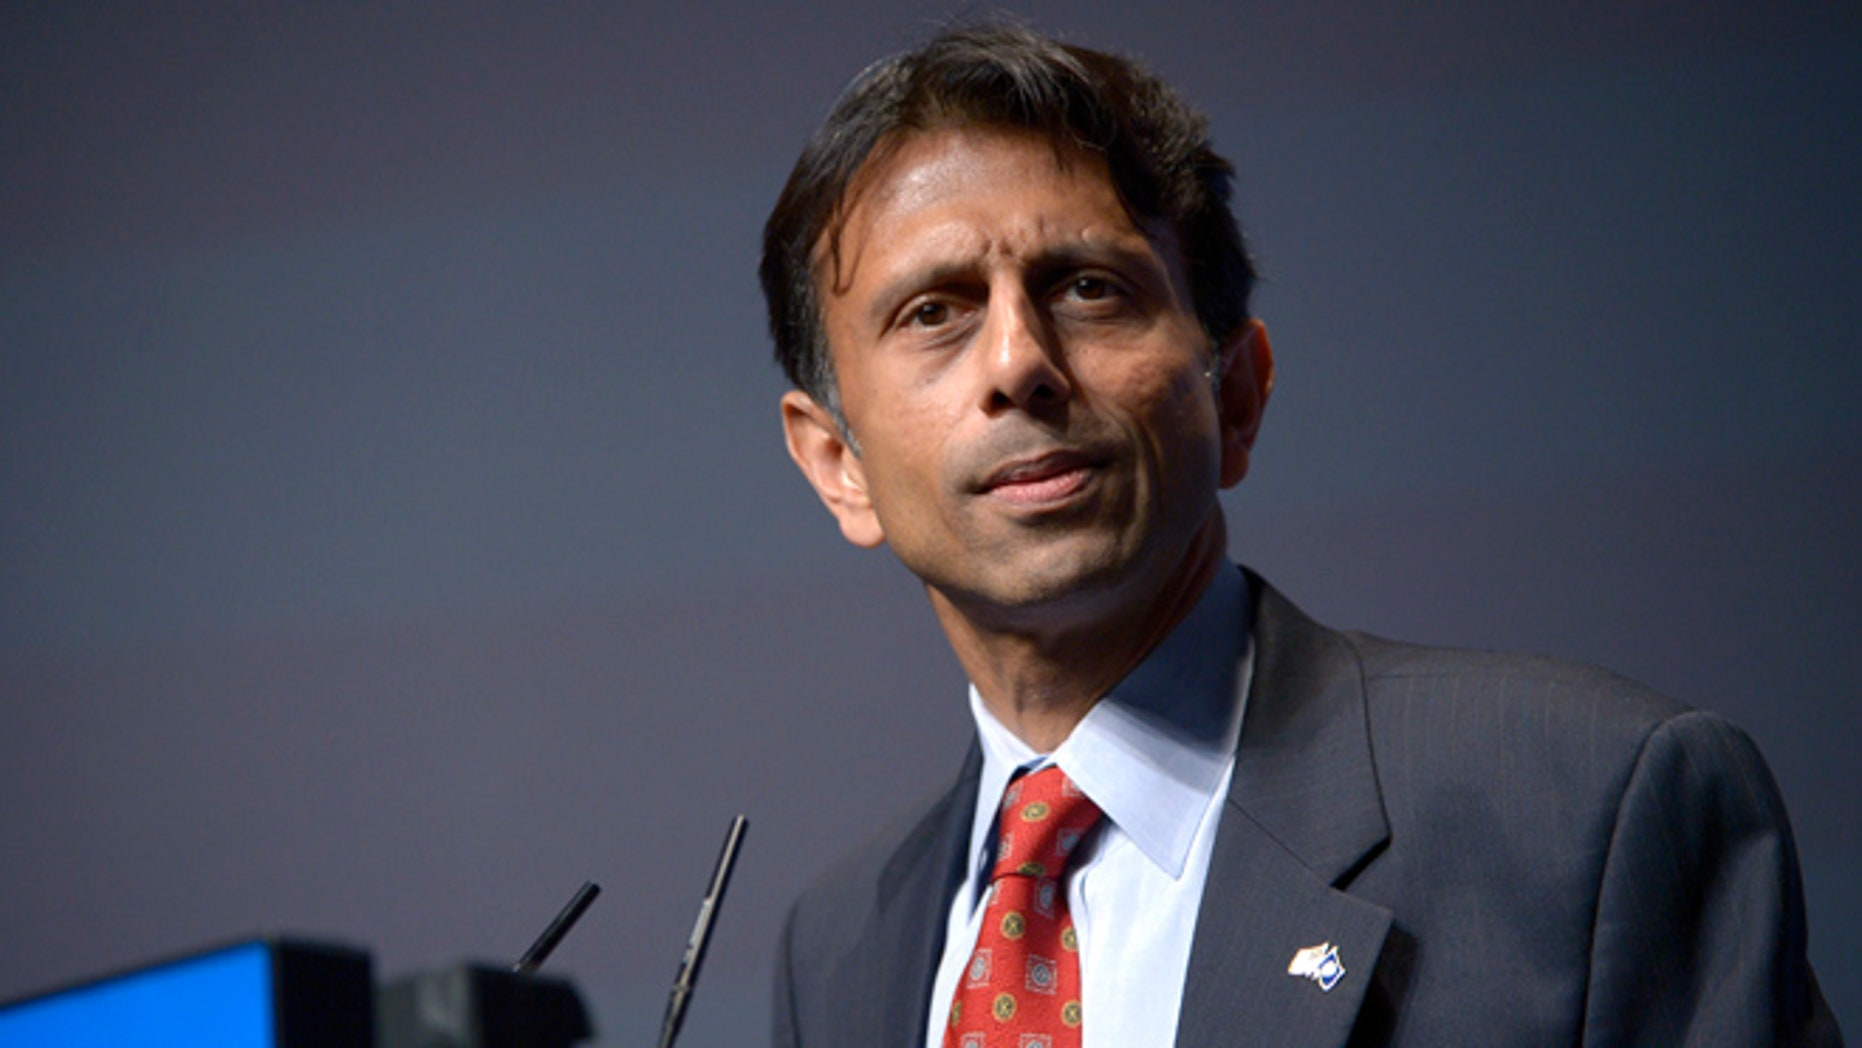 FILE: Aug. 30, 2013: Louisiana Gov. Bobby Jindal at the Americans for Prosperity Foundation's Defending the American Dream Summit in Orlando, Fla.